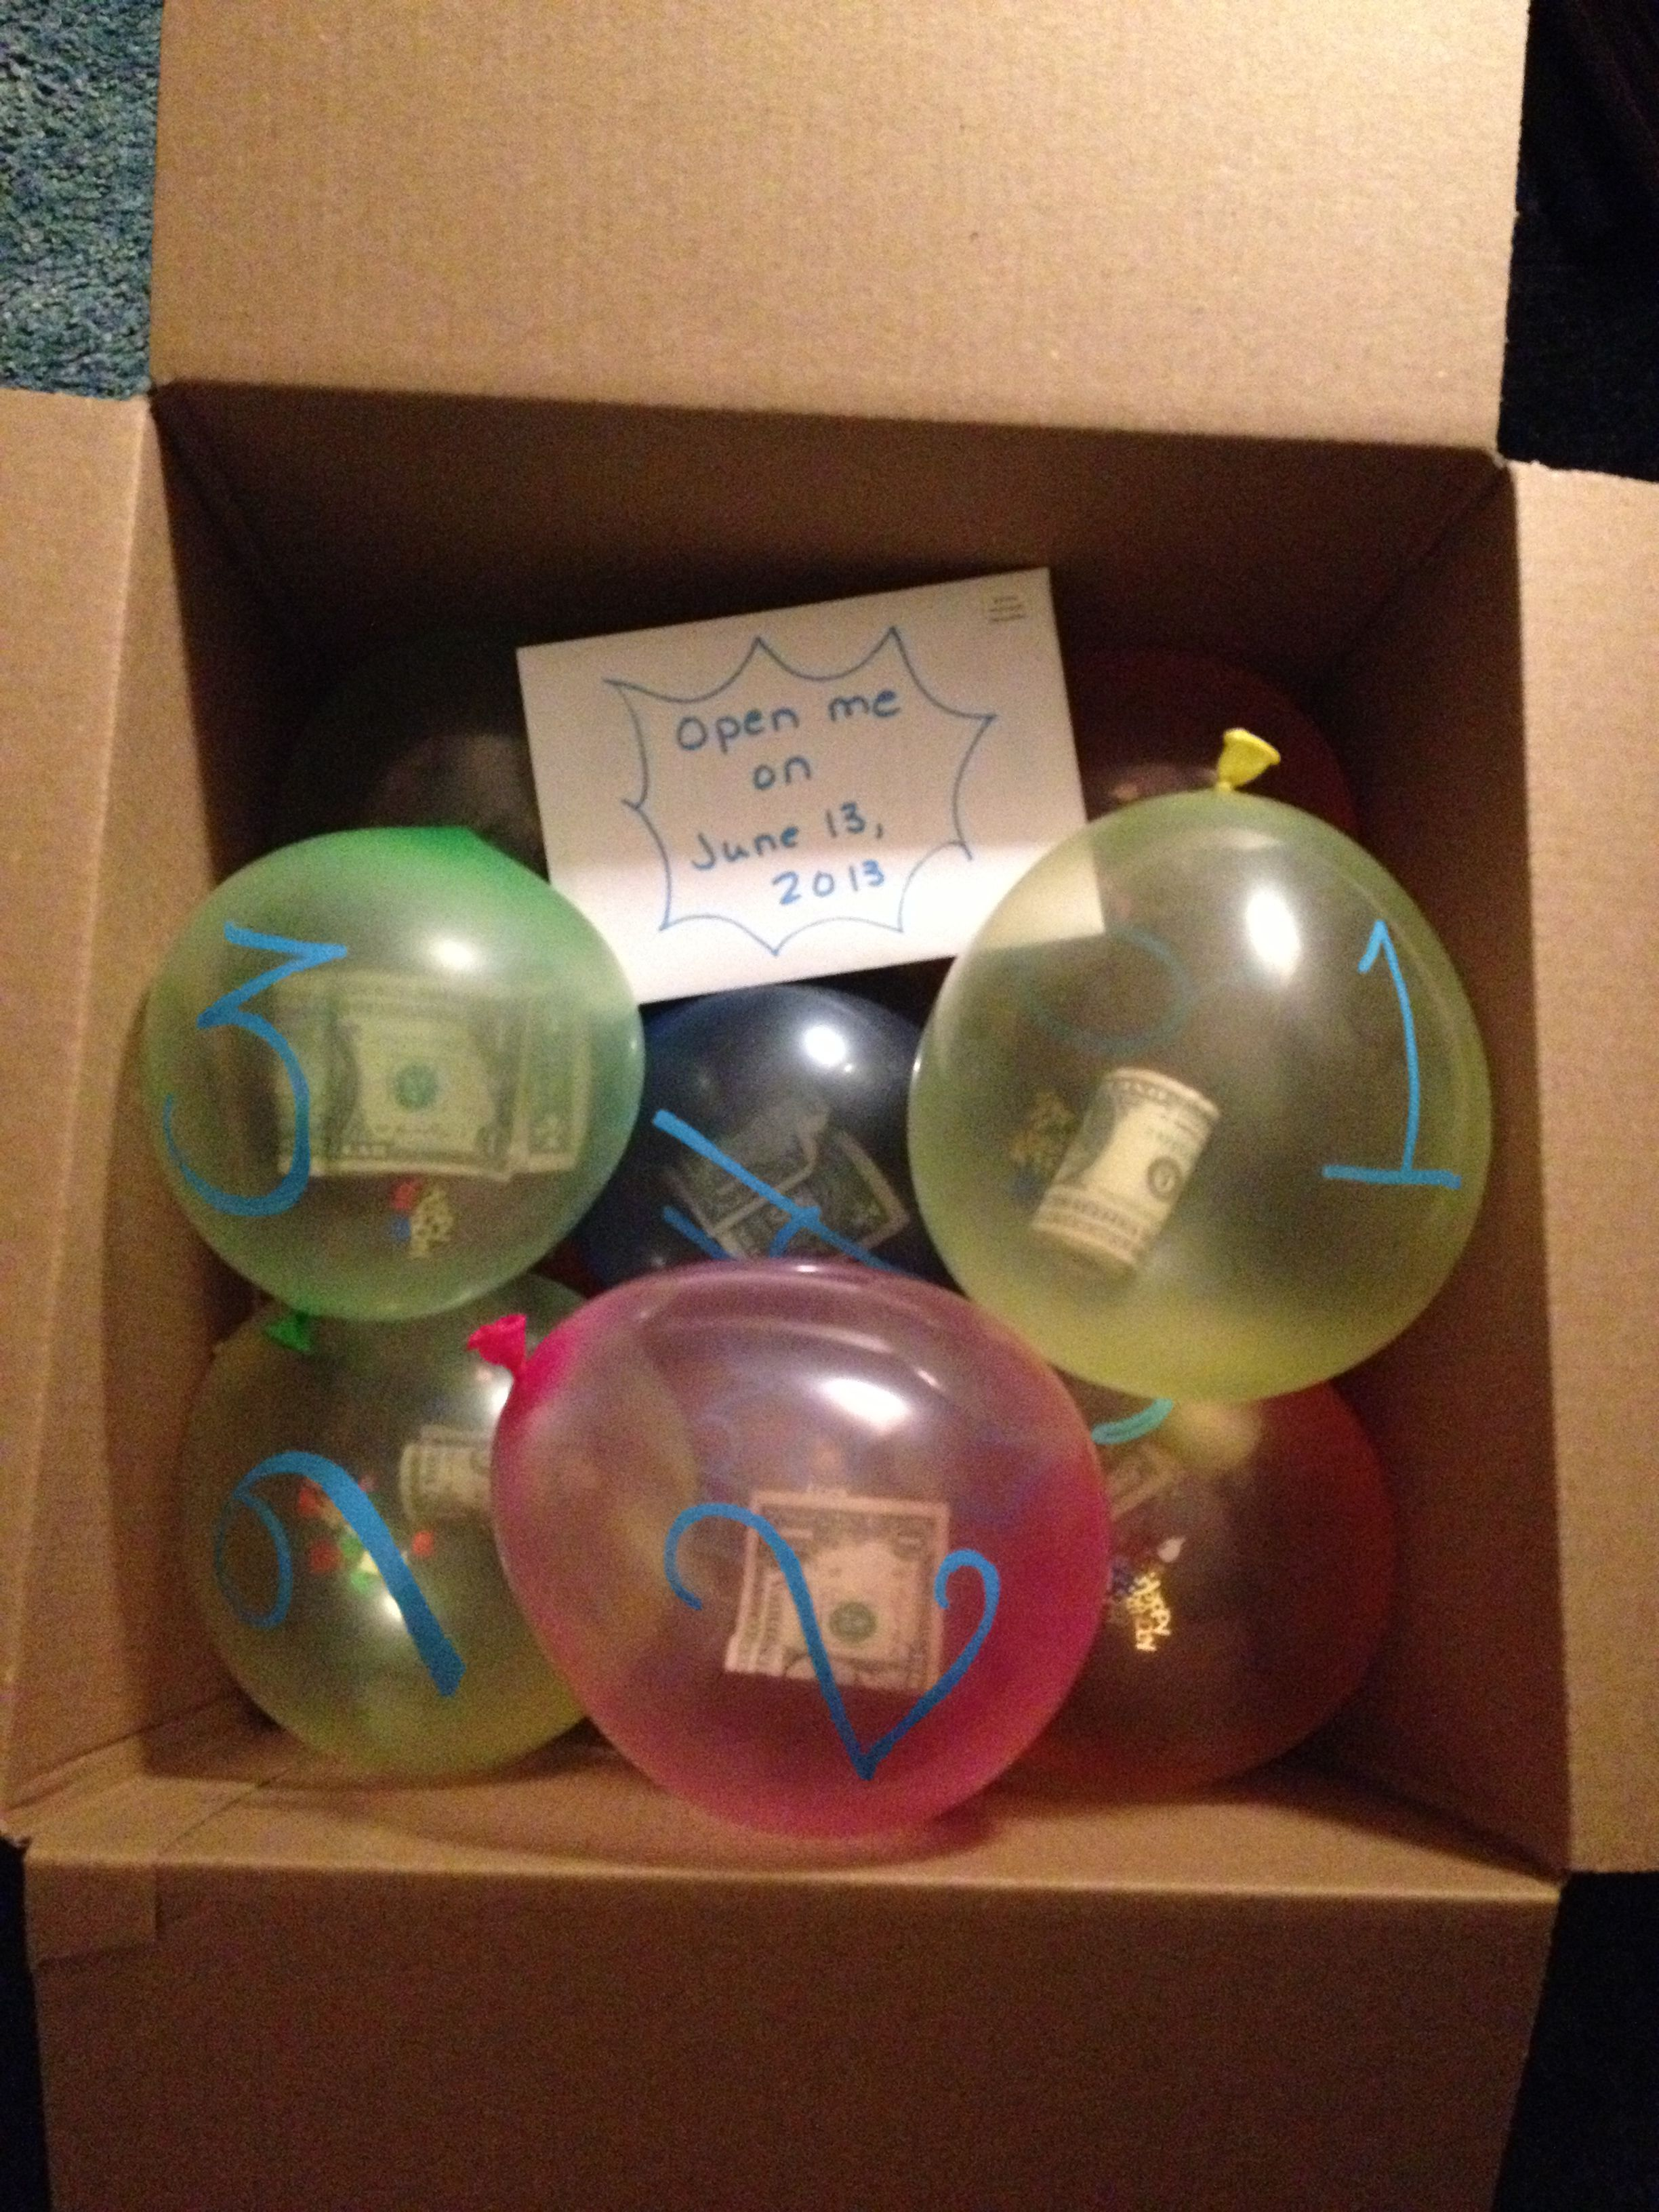 Long Distance Birthday Gift For My 13 Year Old Son He Was Born On The Thirteenth So There Were Balloons All Labeled With A Number